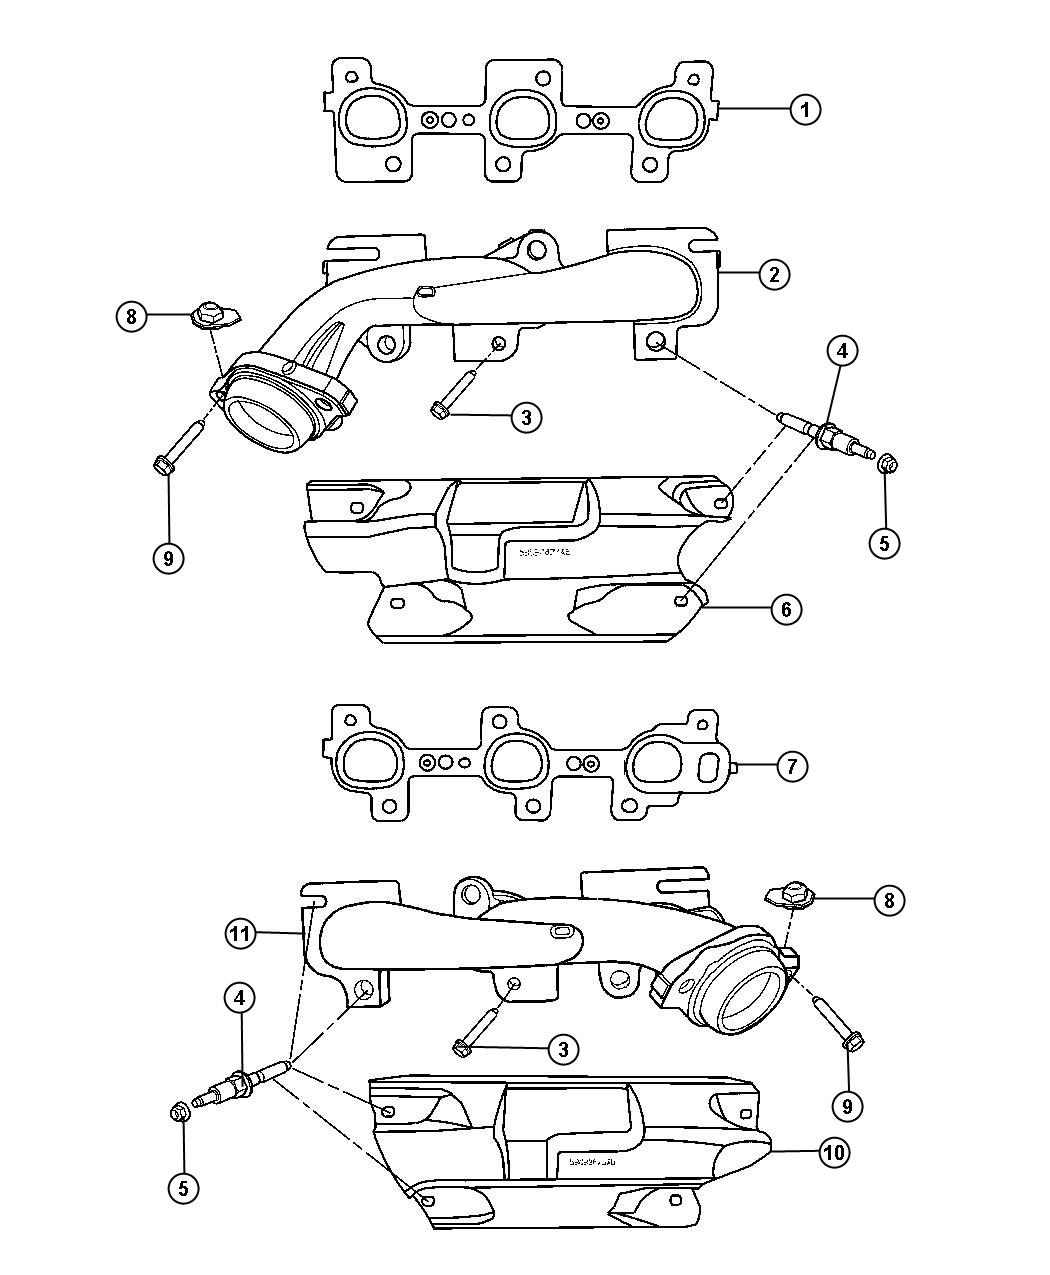 Dodge Durango Bolt Screw Used For Bolt And Washer Used